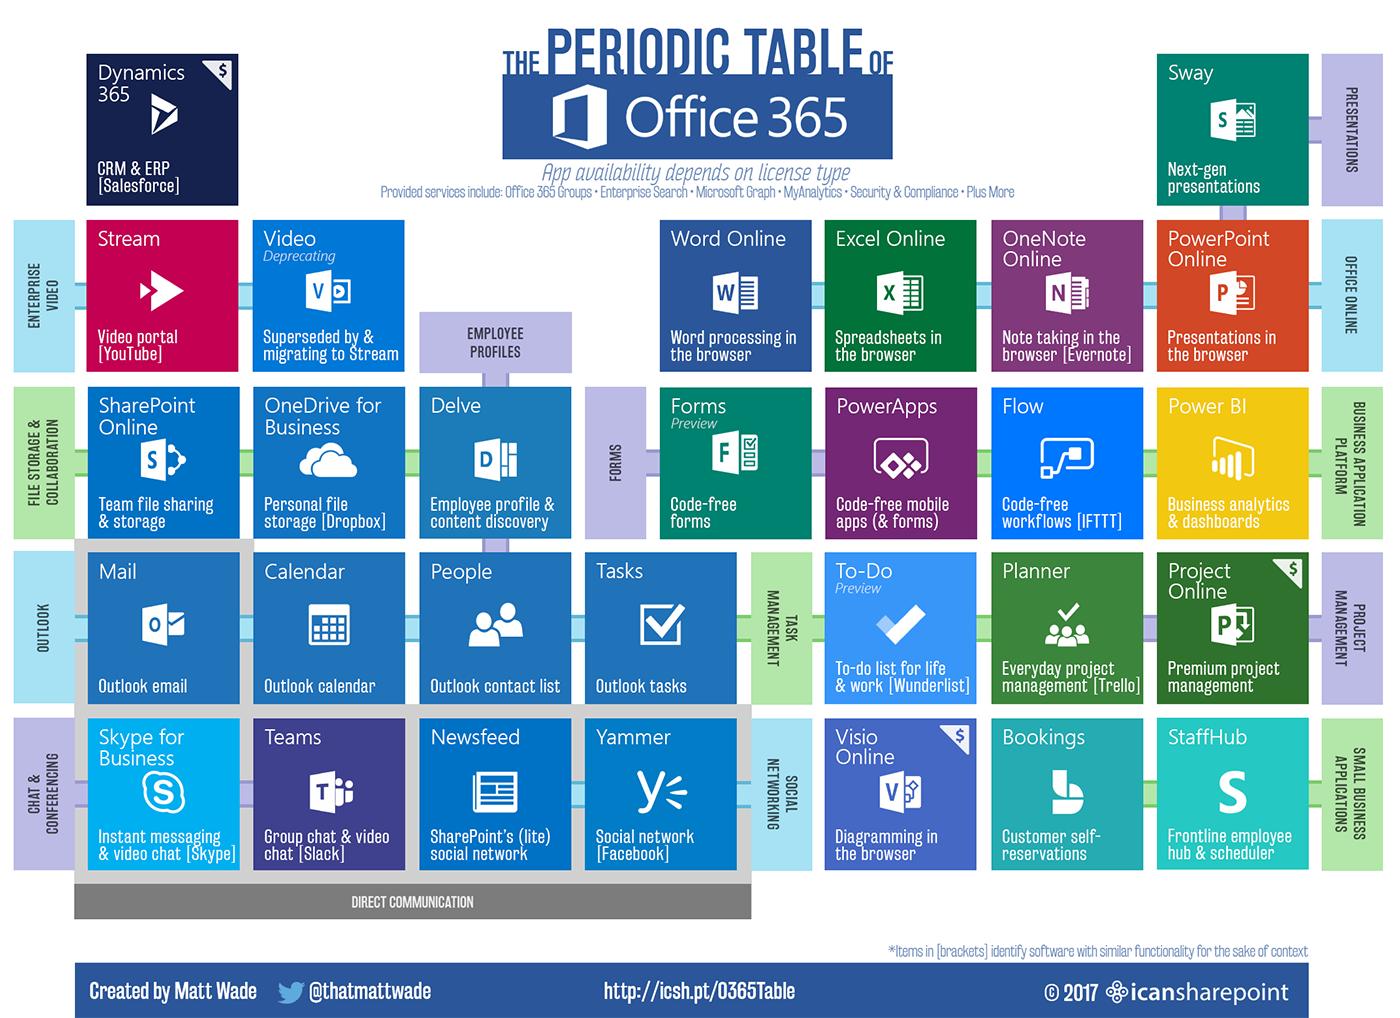 Icansharepoint wp content uploads 2017 05 periodic table of icansharepoint wp content uploads 2017 05 periodic table of office gamestrikefo Gallery